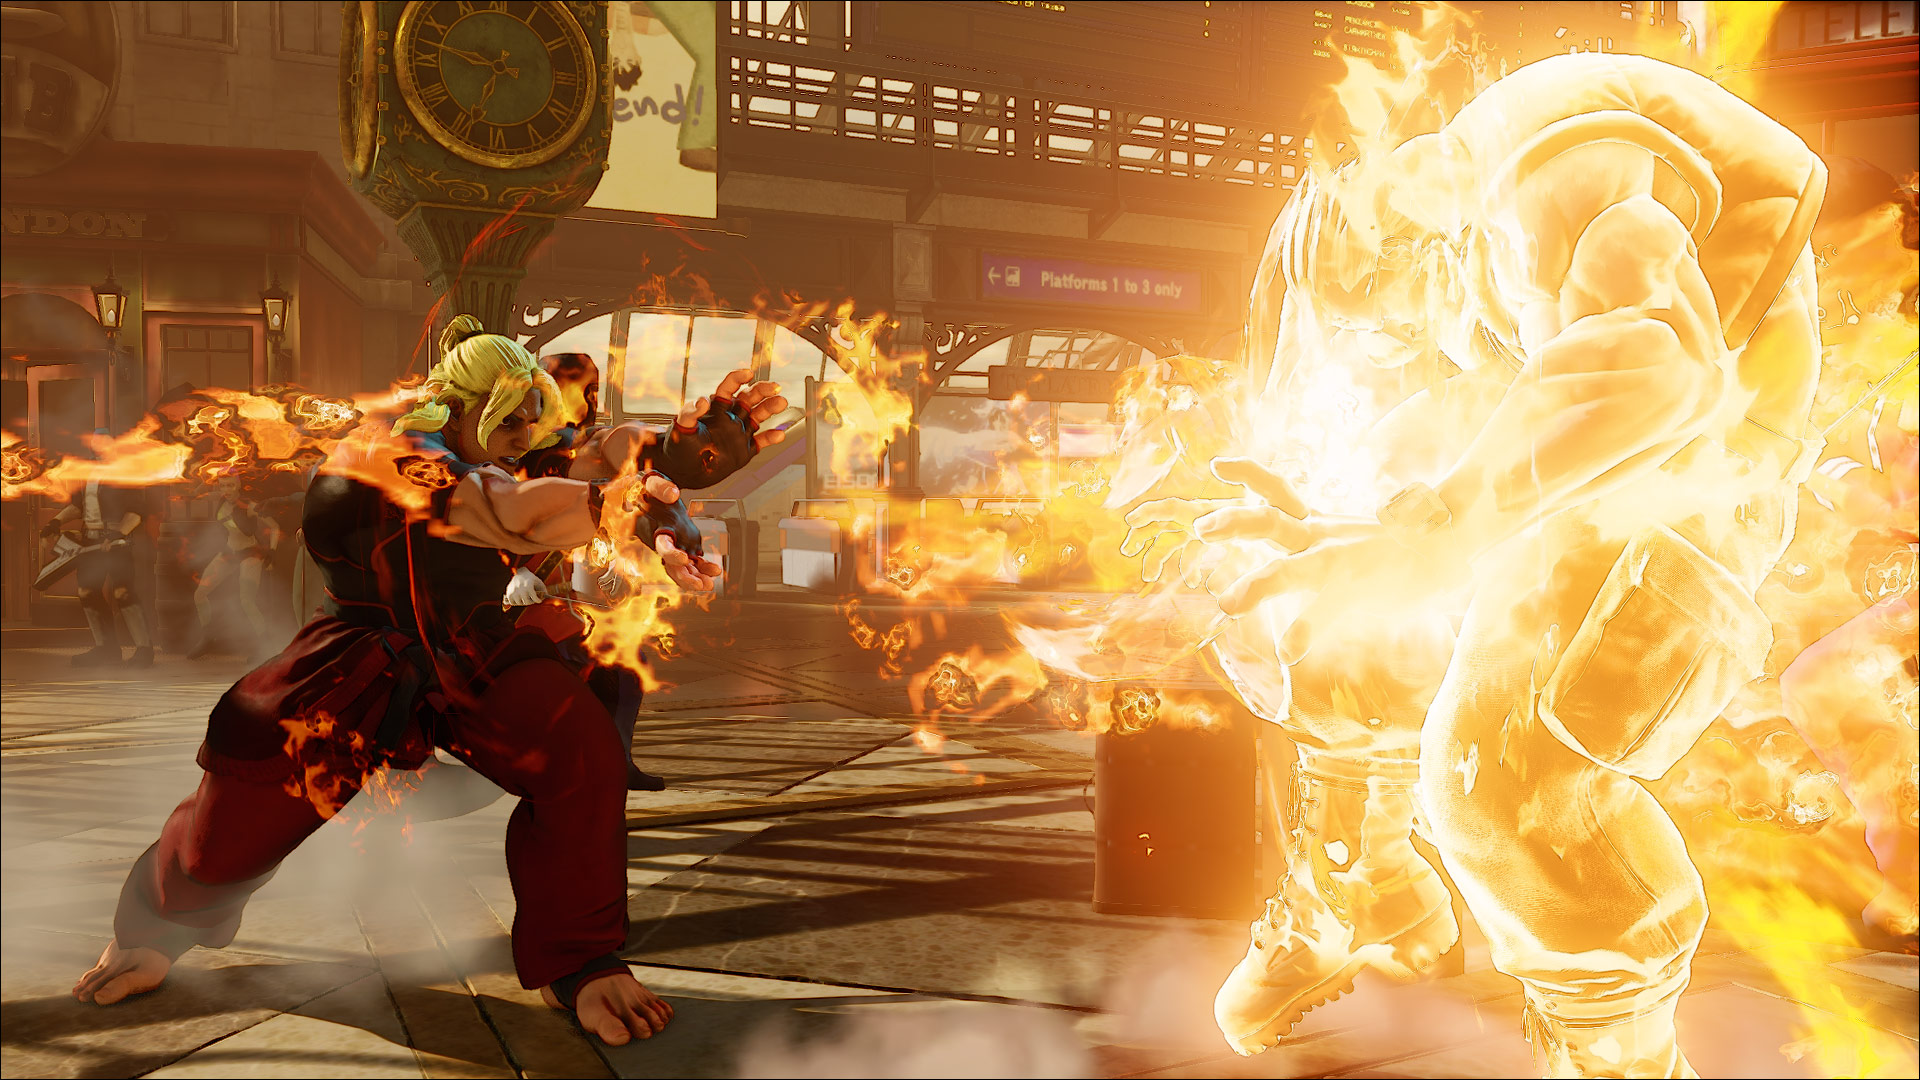 Ken Street Fighter 5 SDCC 2015 reveal 12 out of 13 image gallery